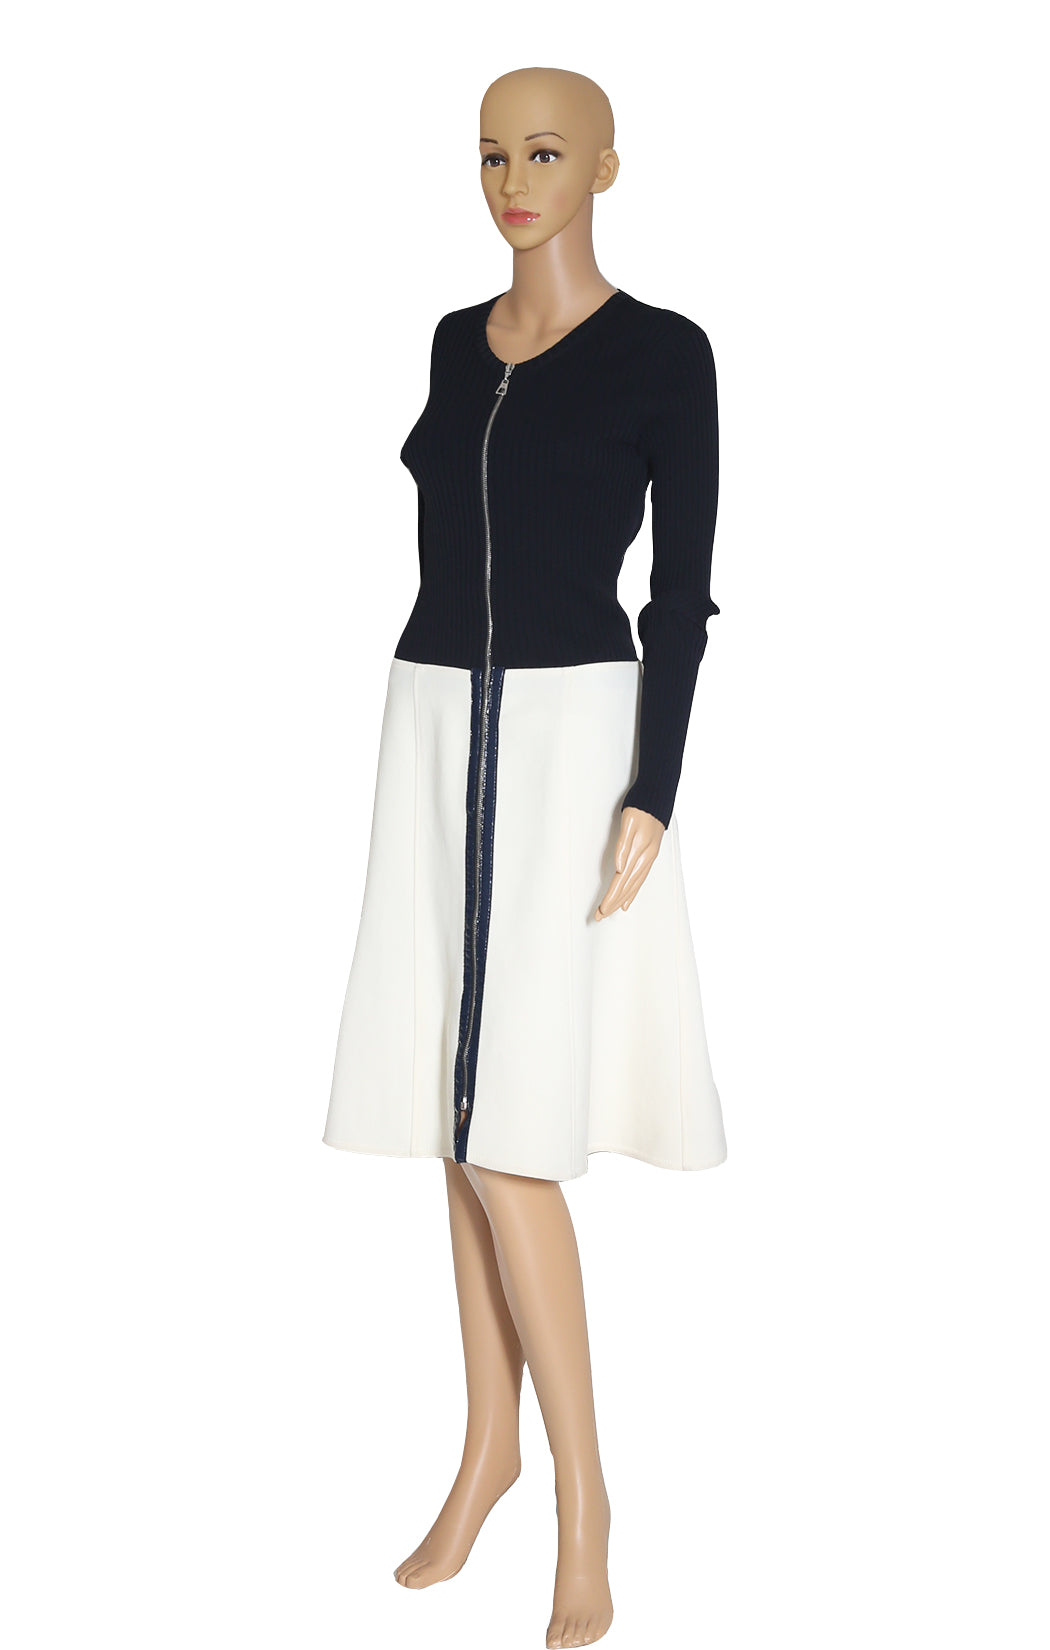 Front view of LOUIS VUITTON Black and Ivory Dress Size: FR 40 (US 8)